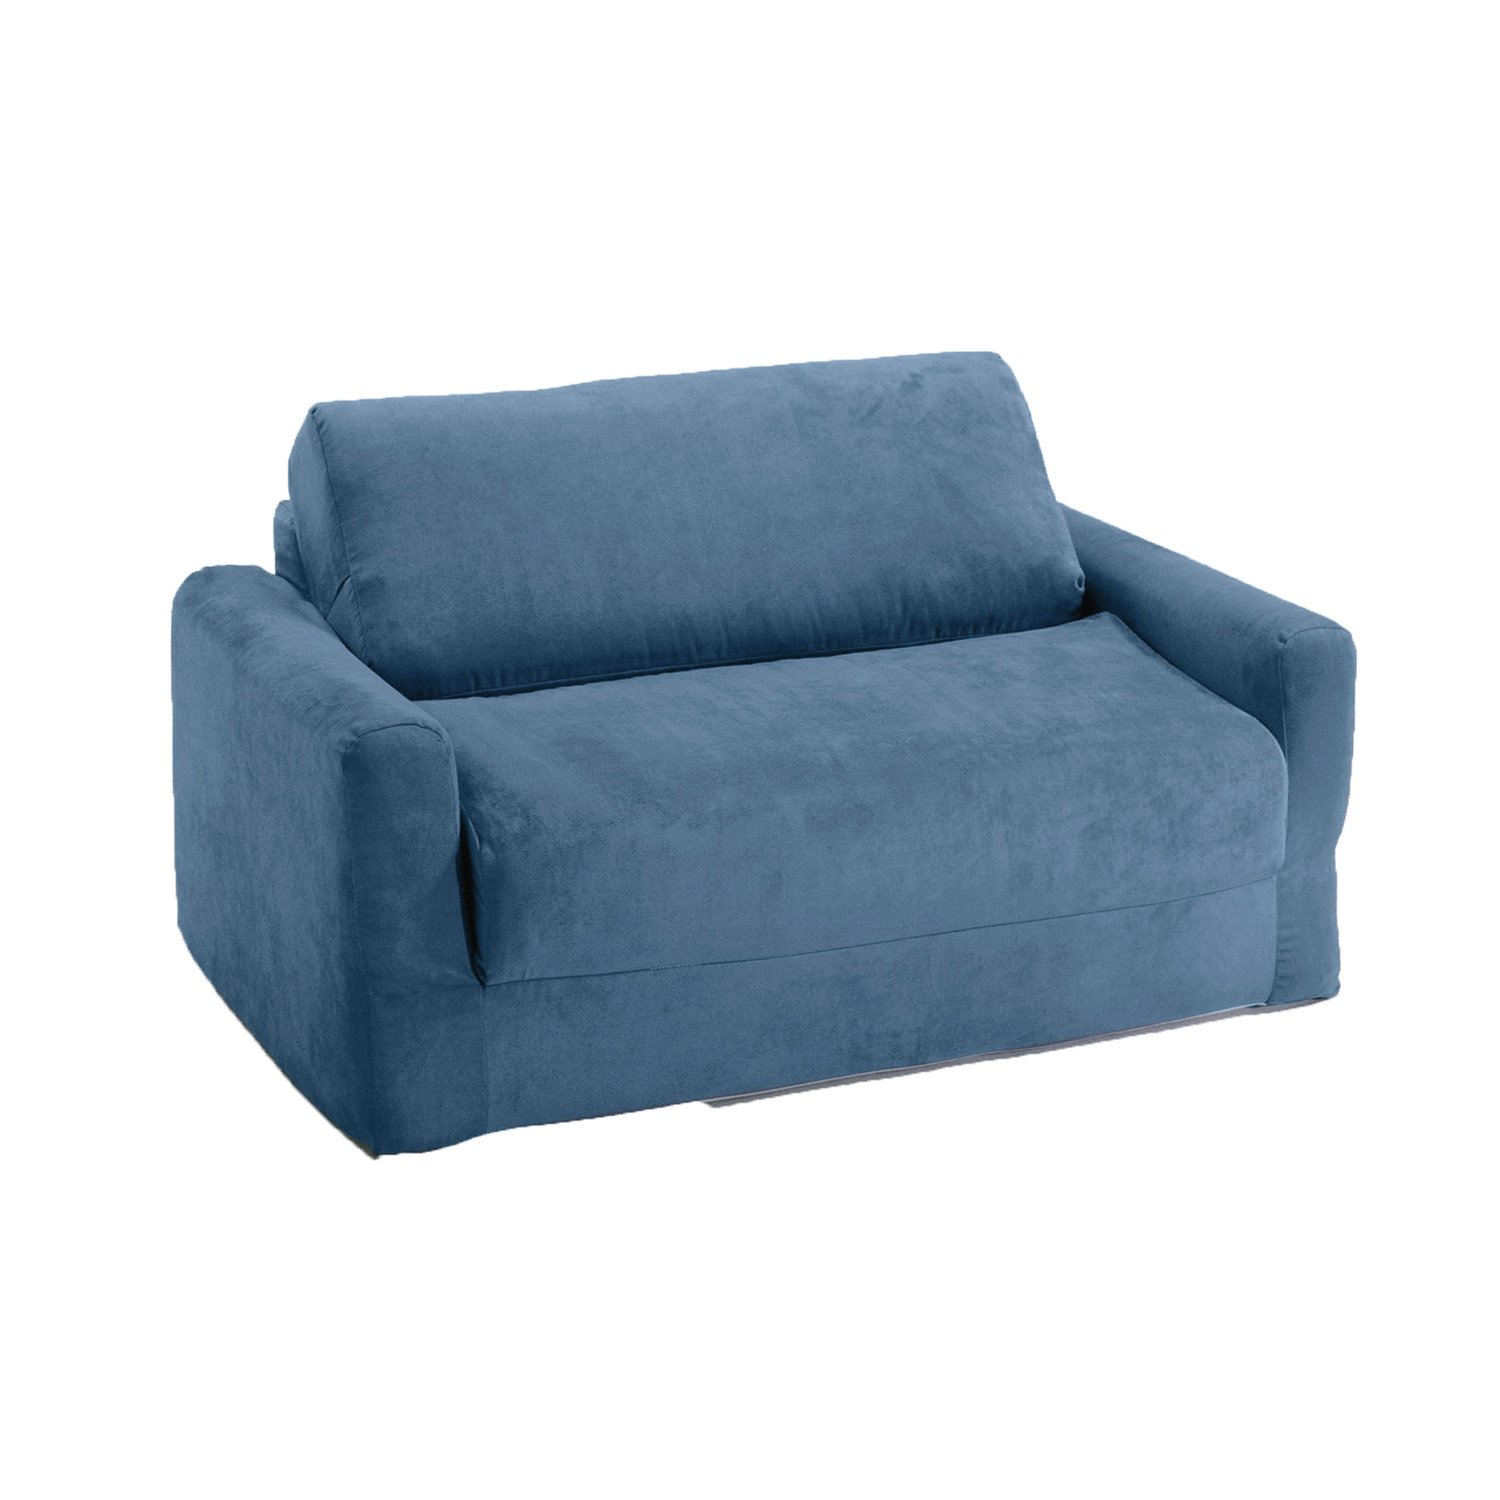 Amazon.com: Fun Furnishings Sofa Sleeper, Green Micro Suede: Kitchen U0026  Dining